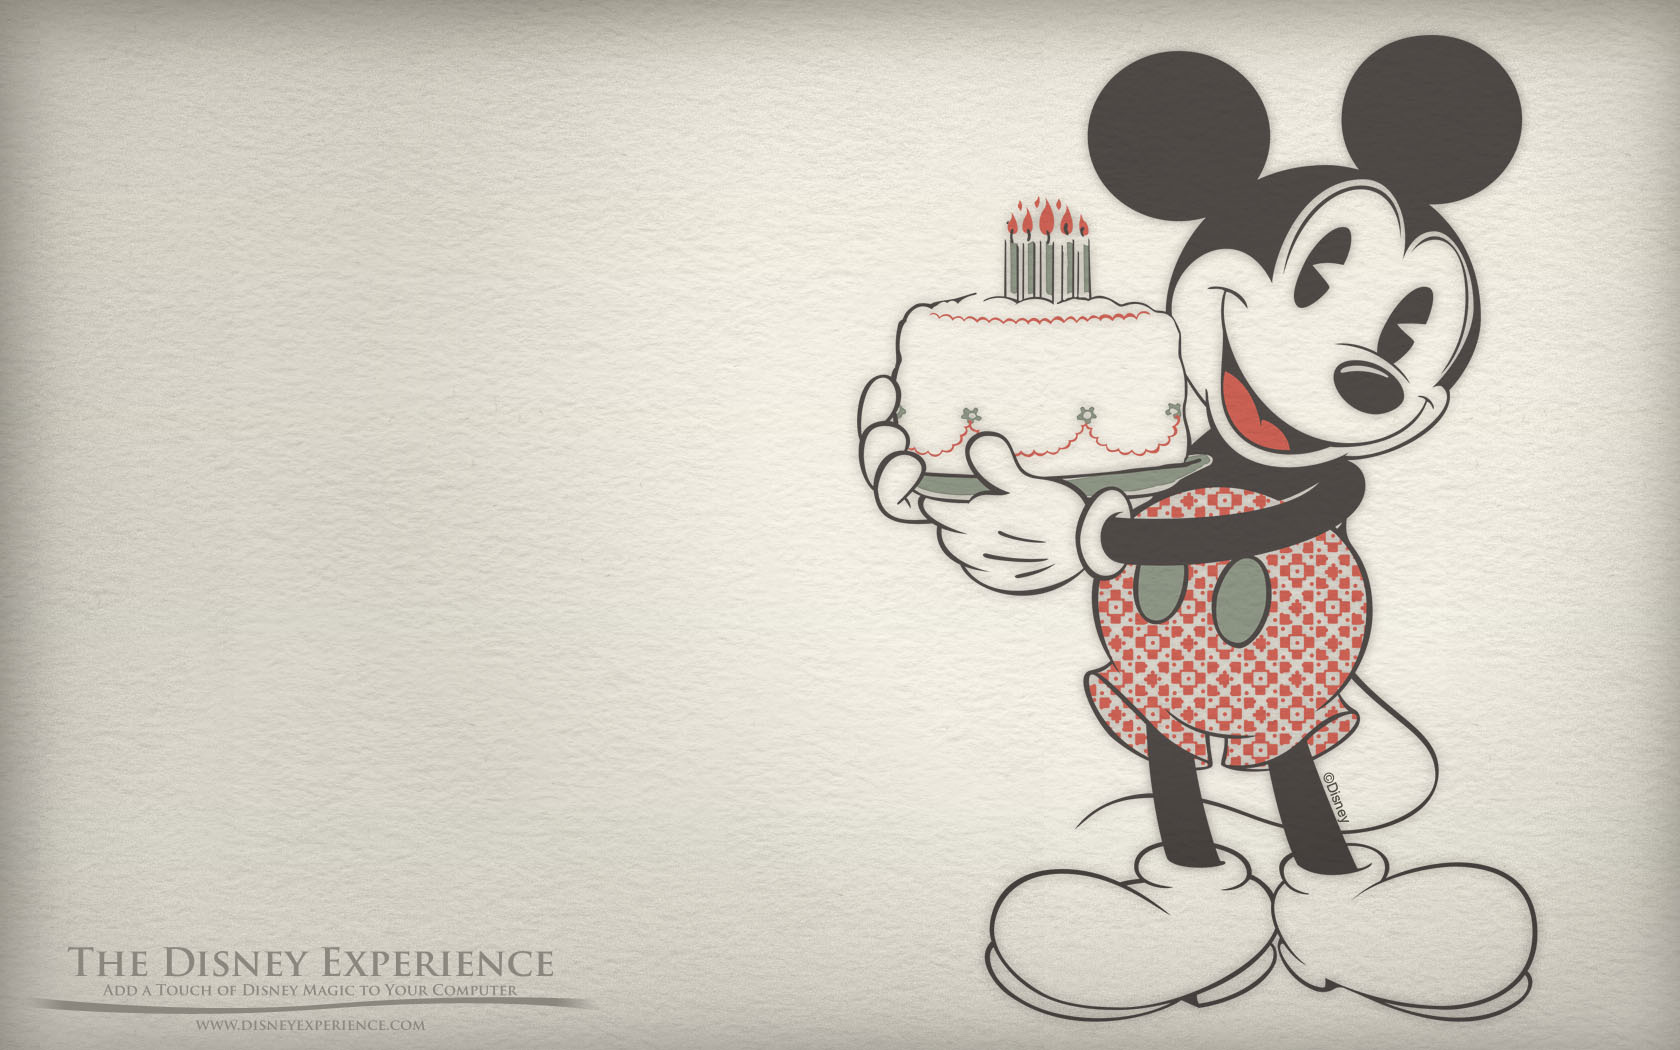 Mickey mouse wallpaper desktop hd background disney cartoon character 1680x1050